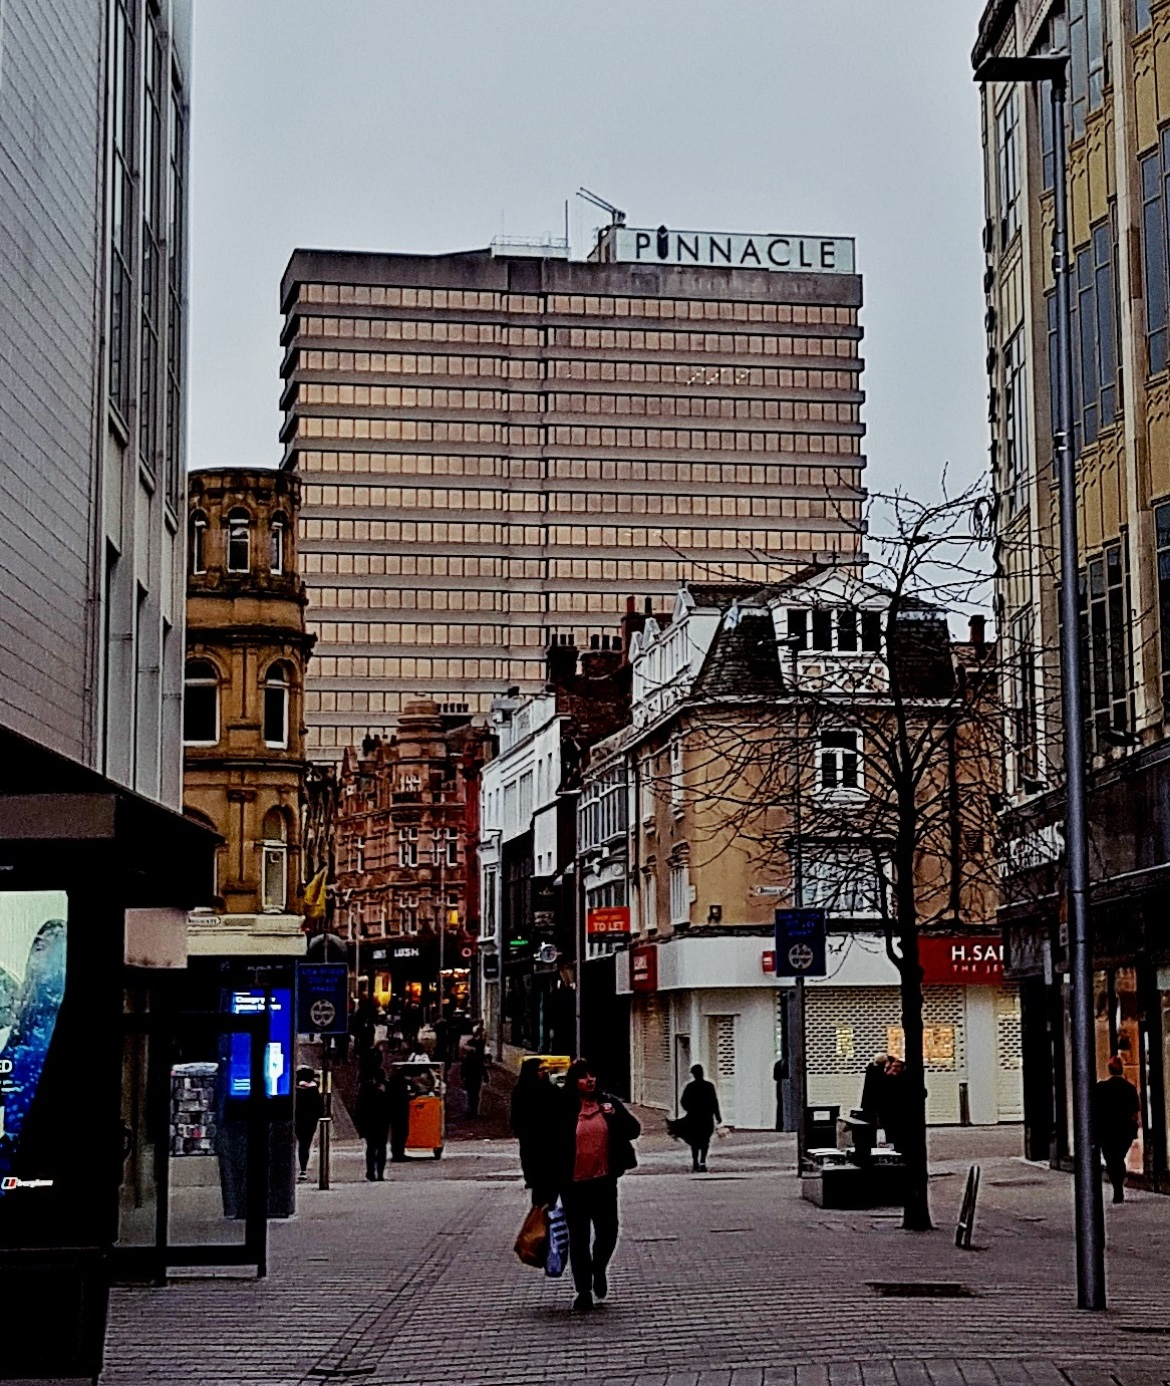 The Pinnacle Building - The Lucky Ones, immersive theatre experience by Riptide Leeds, review by BeckyBecky Blogs